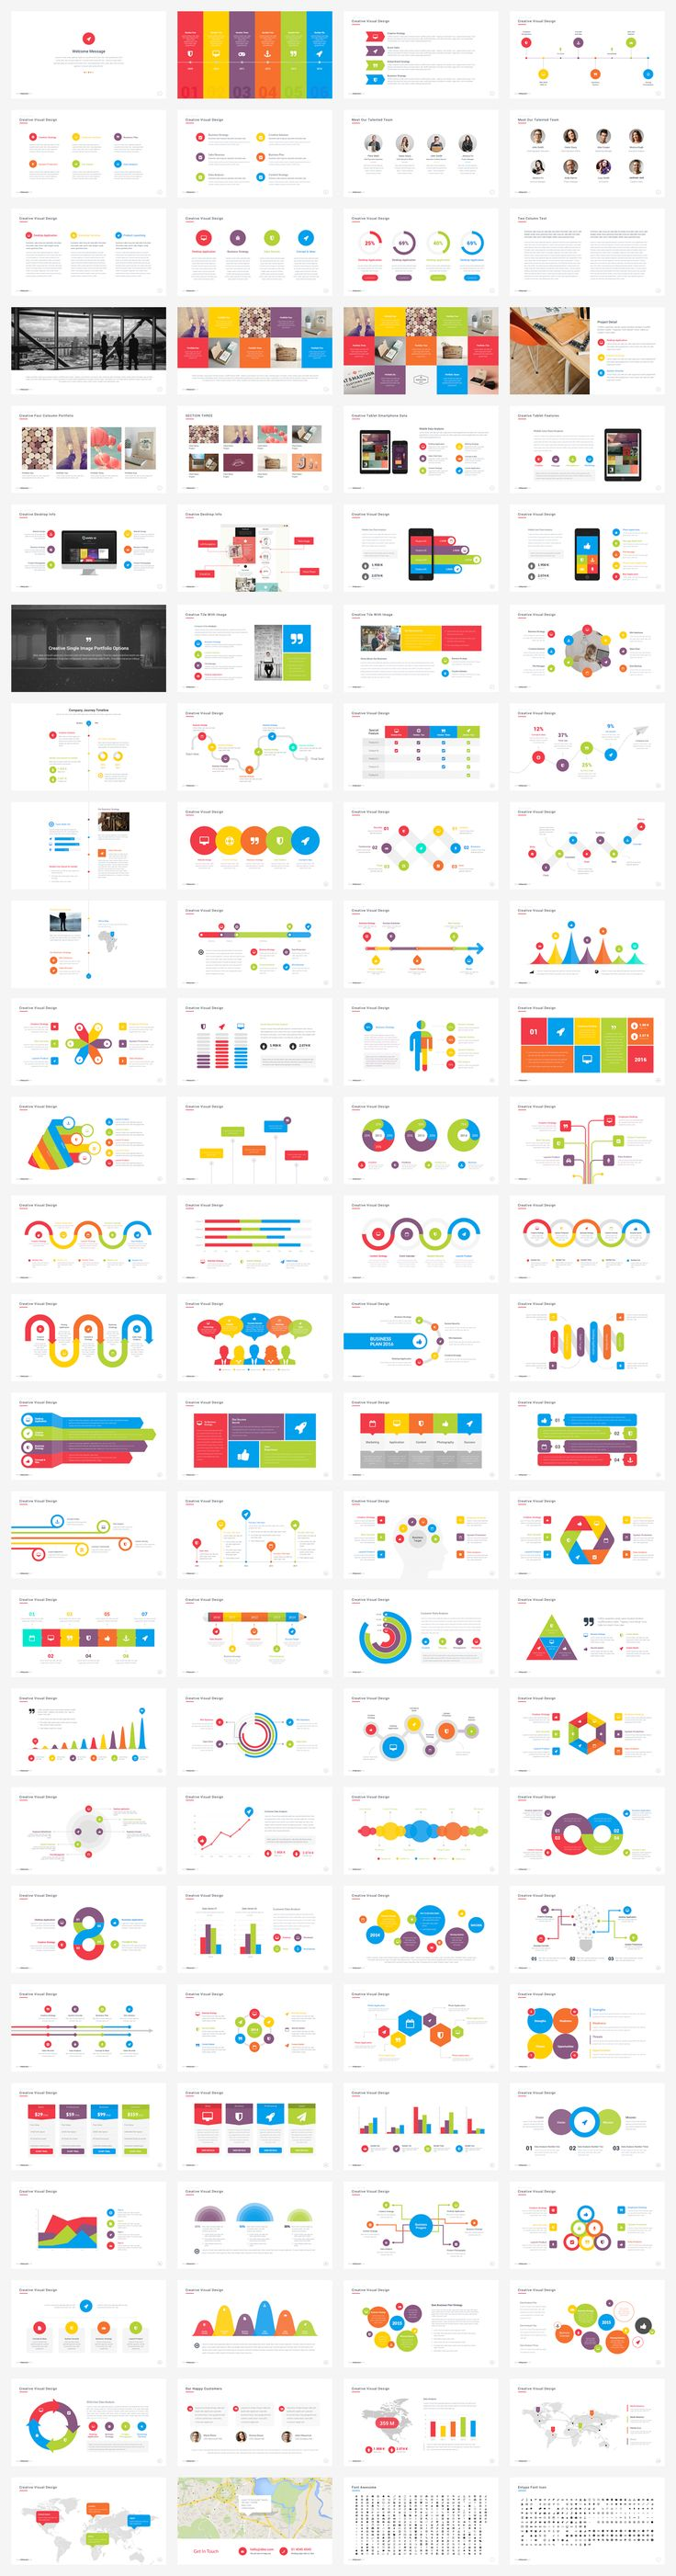 cool powerpoint presentations Free complete collection of the powerpoint smartart graphics download 130+ ready-to-use layouts just browse, select and copy/paste into your presentation.